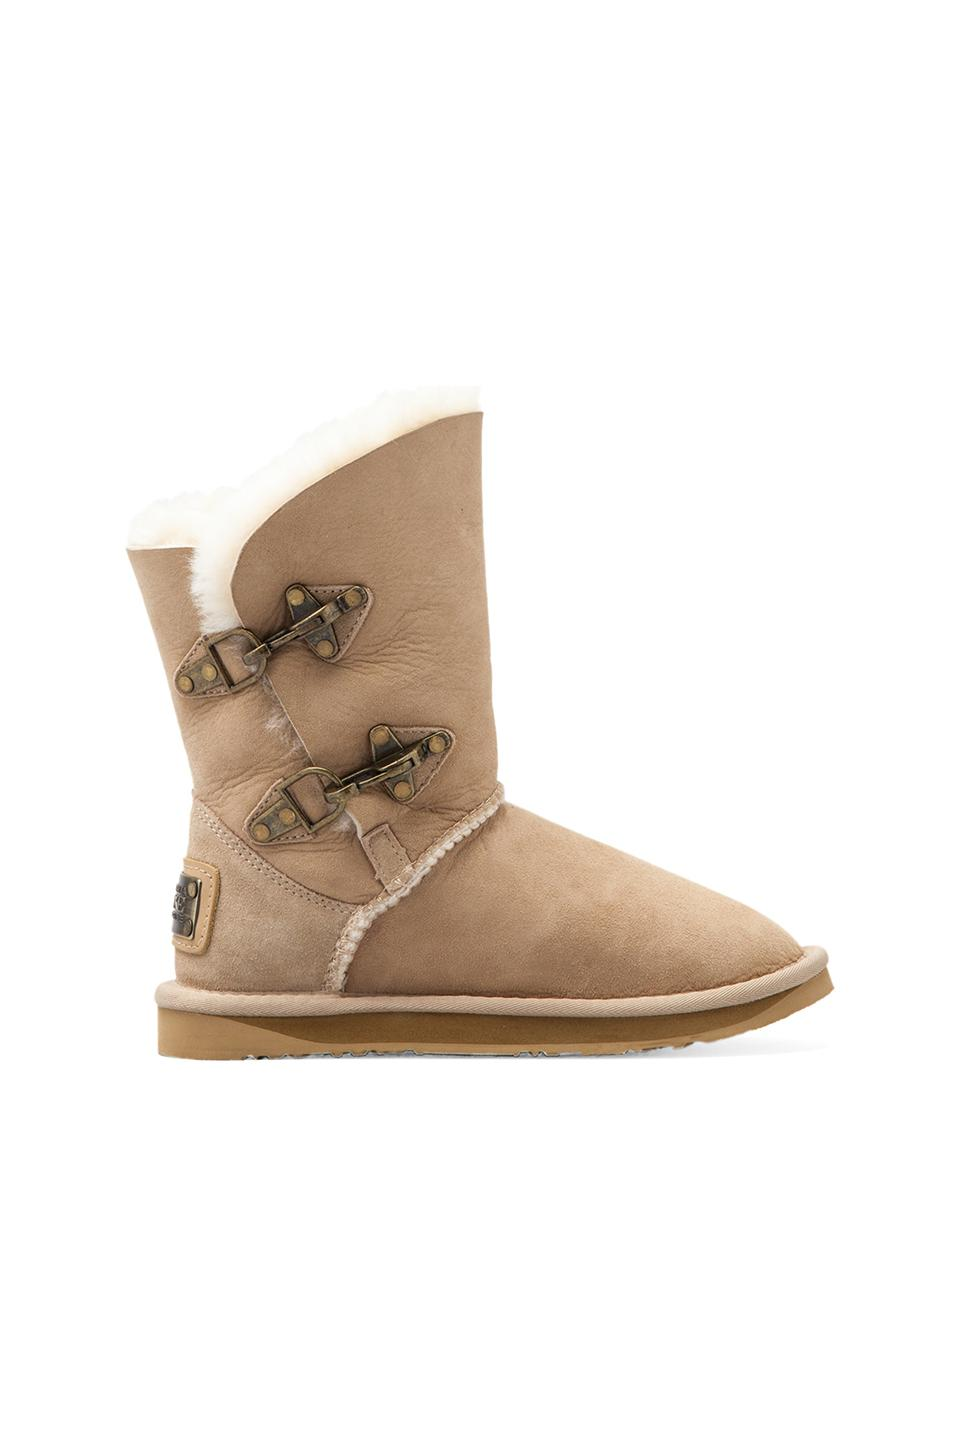 Australia luxe collective renegade short boot with sheep shearling in sand from revolveclothing.com